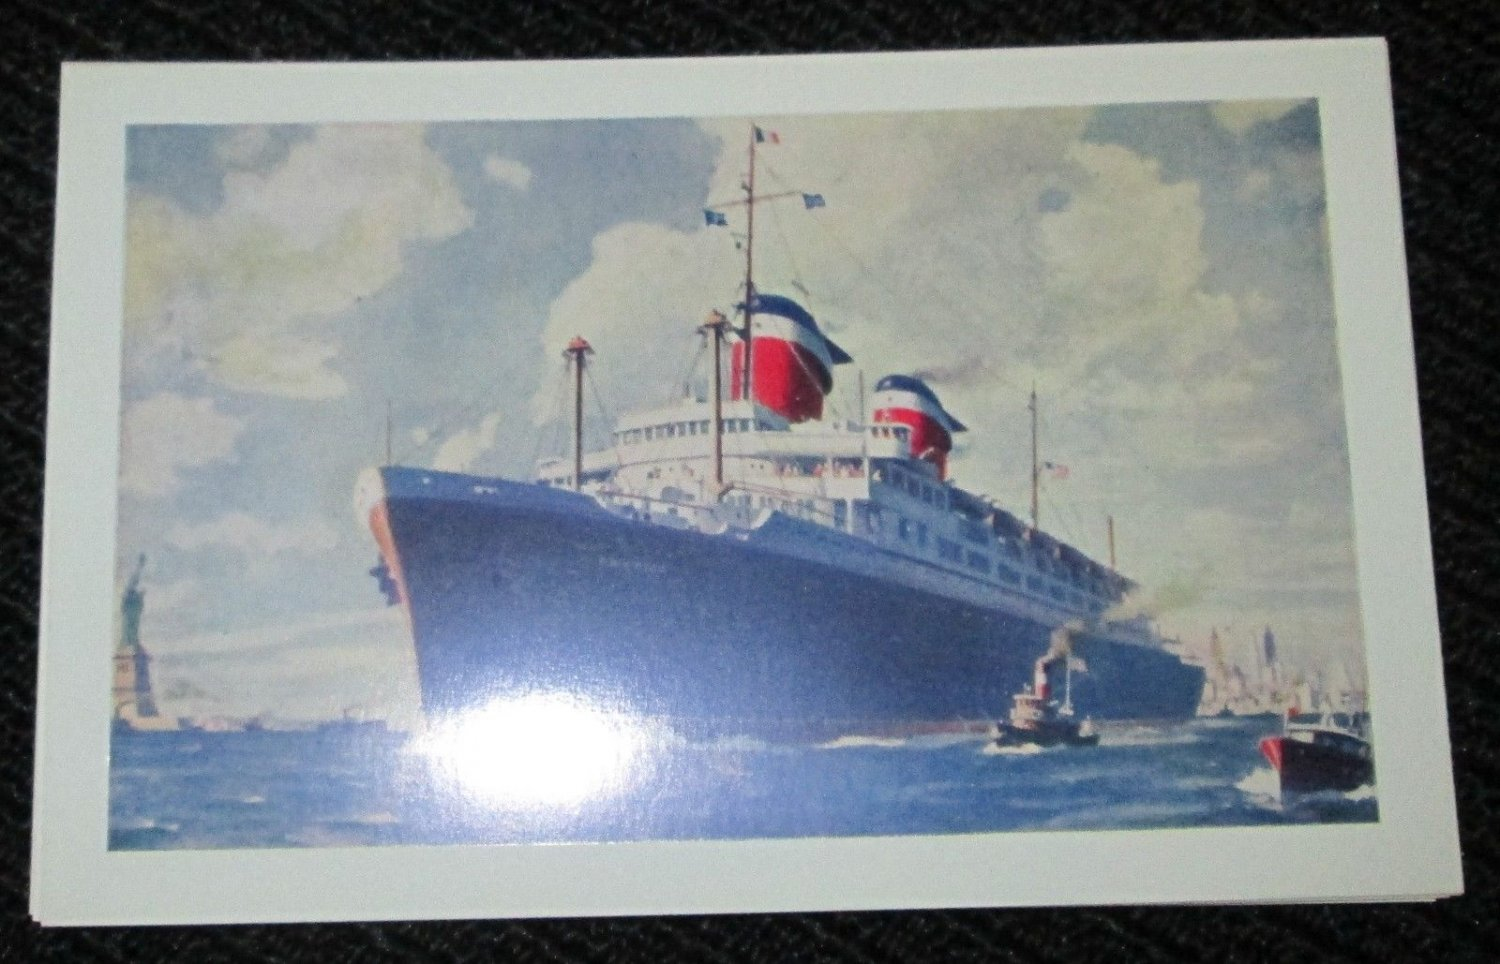 S.S. 'AMERICA' UNITED STATES LINES SHIP POSTCARDS ERA 1950/60 UNUSED COLOR